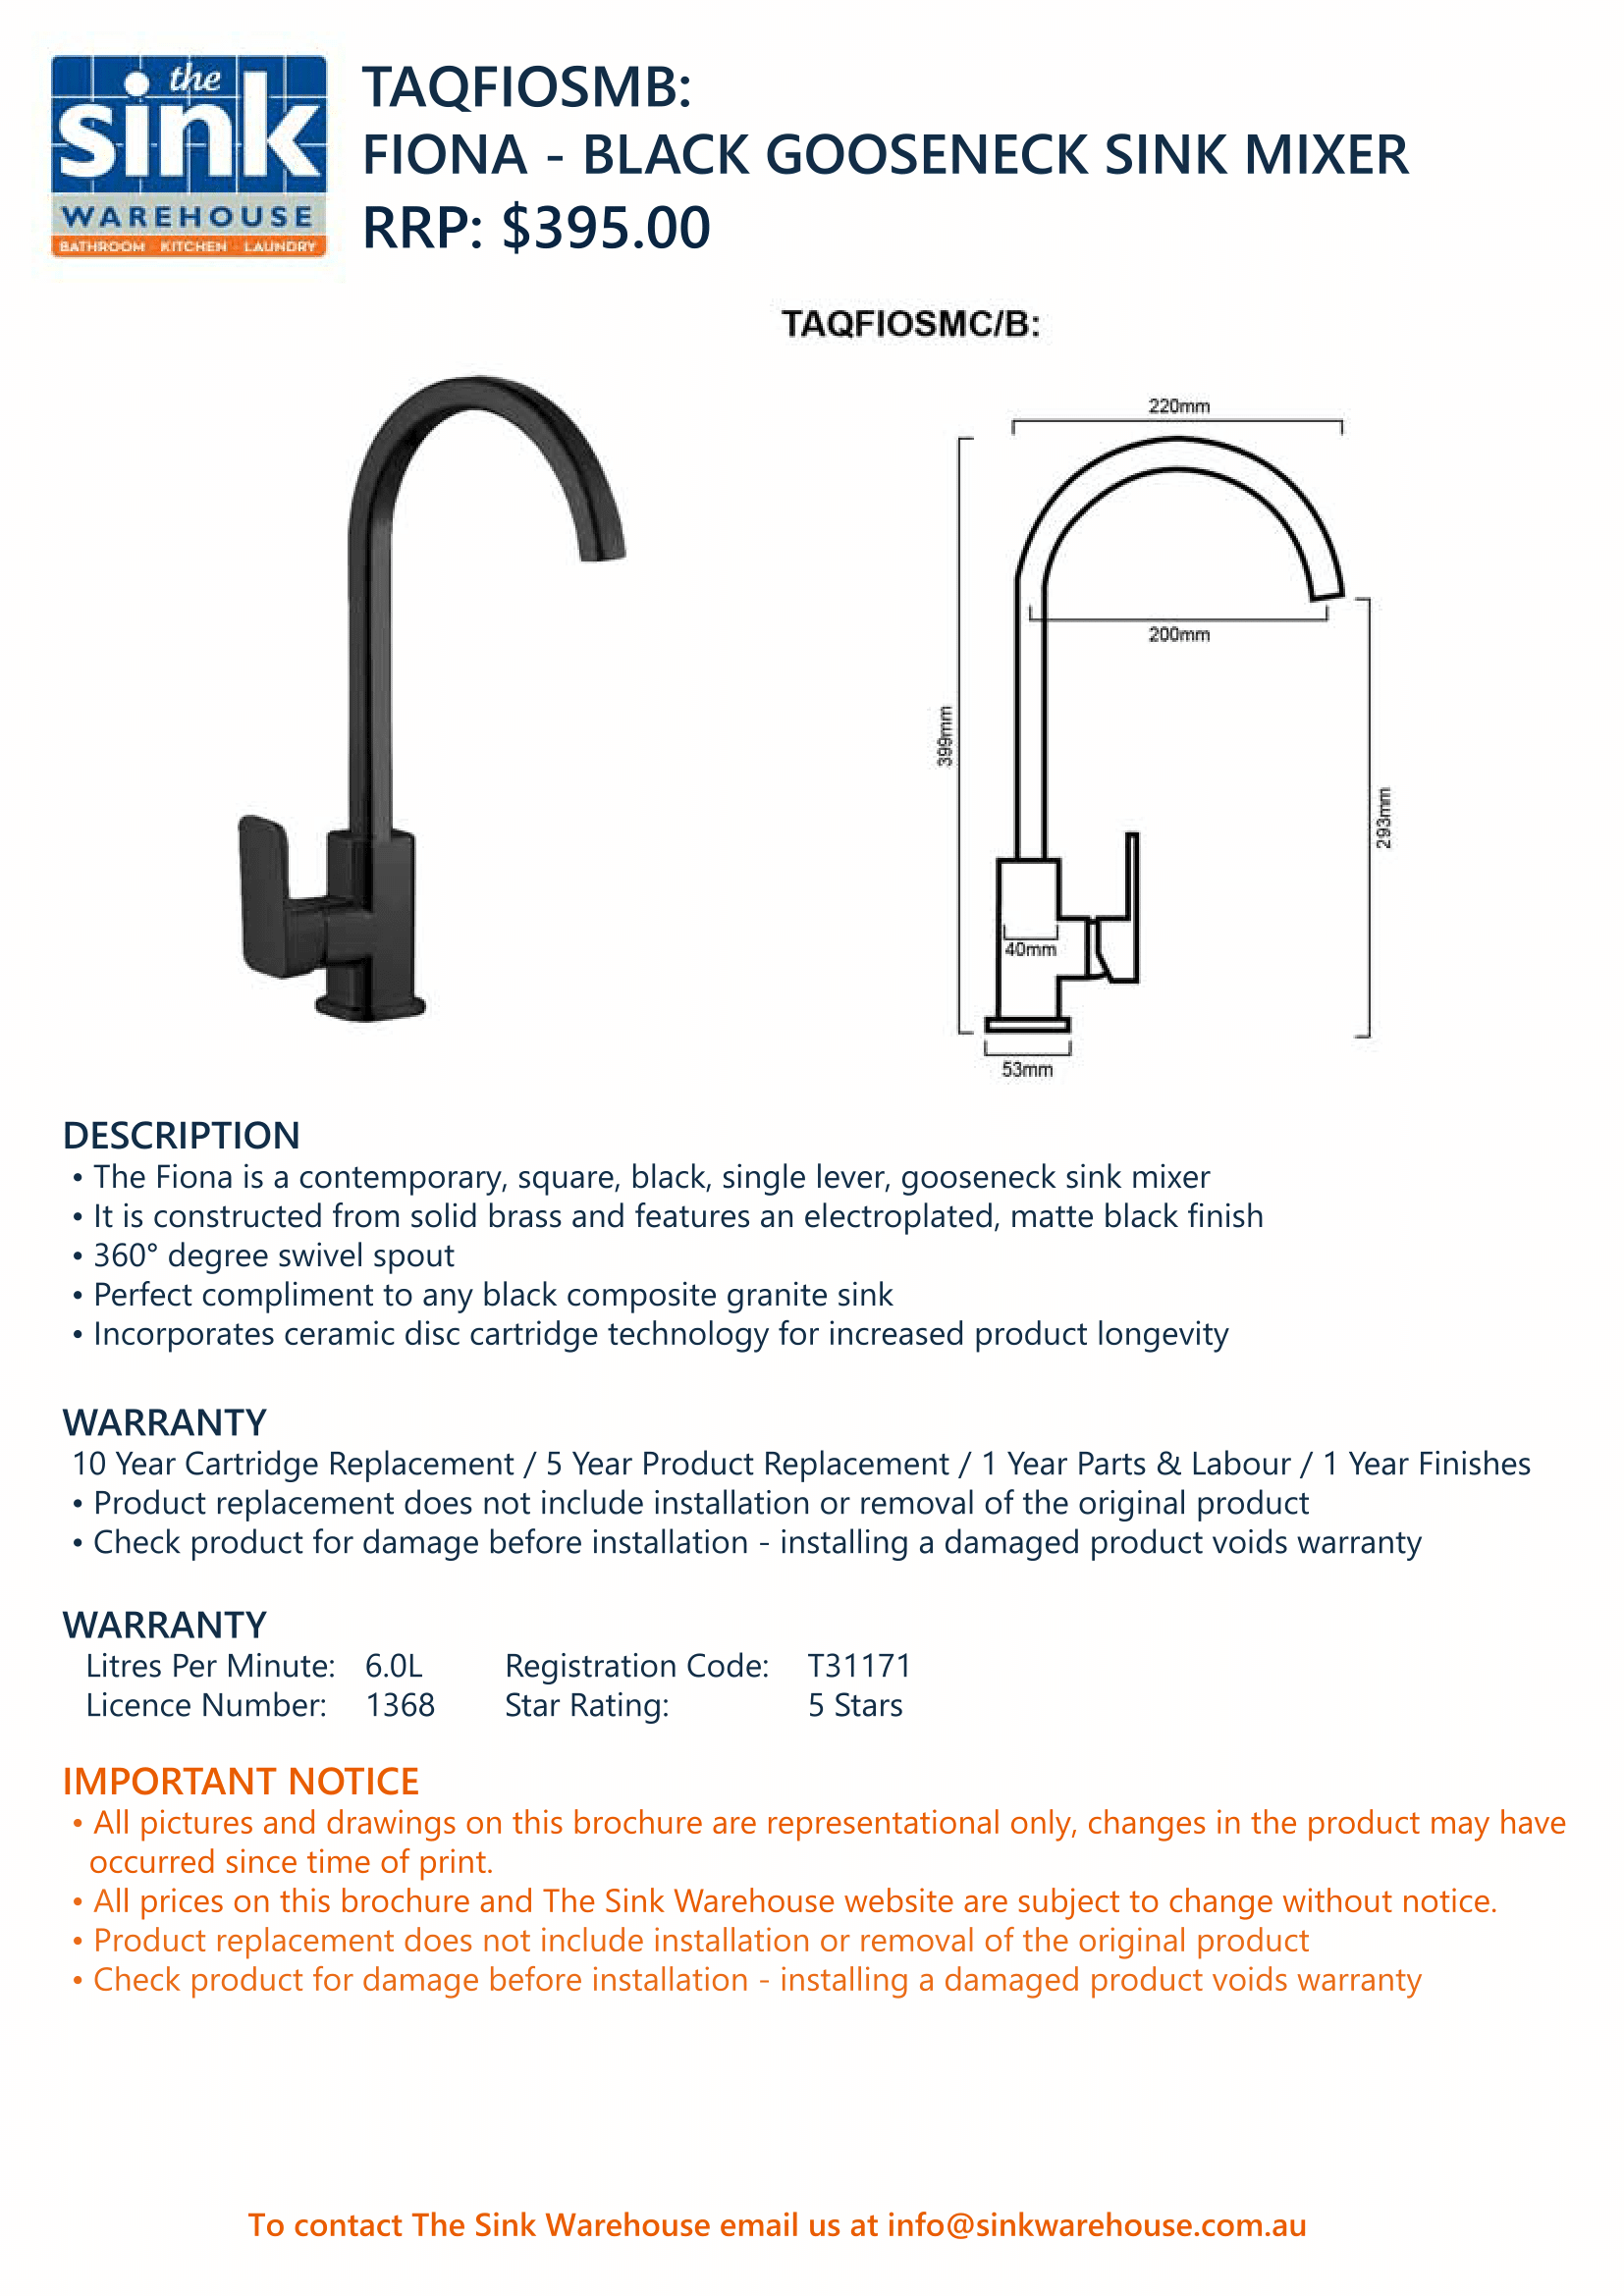 taqfiosmb-product-spec-sheet-1.png